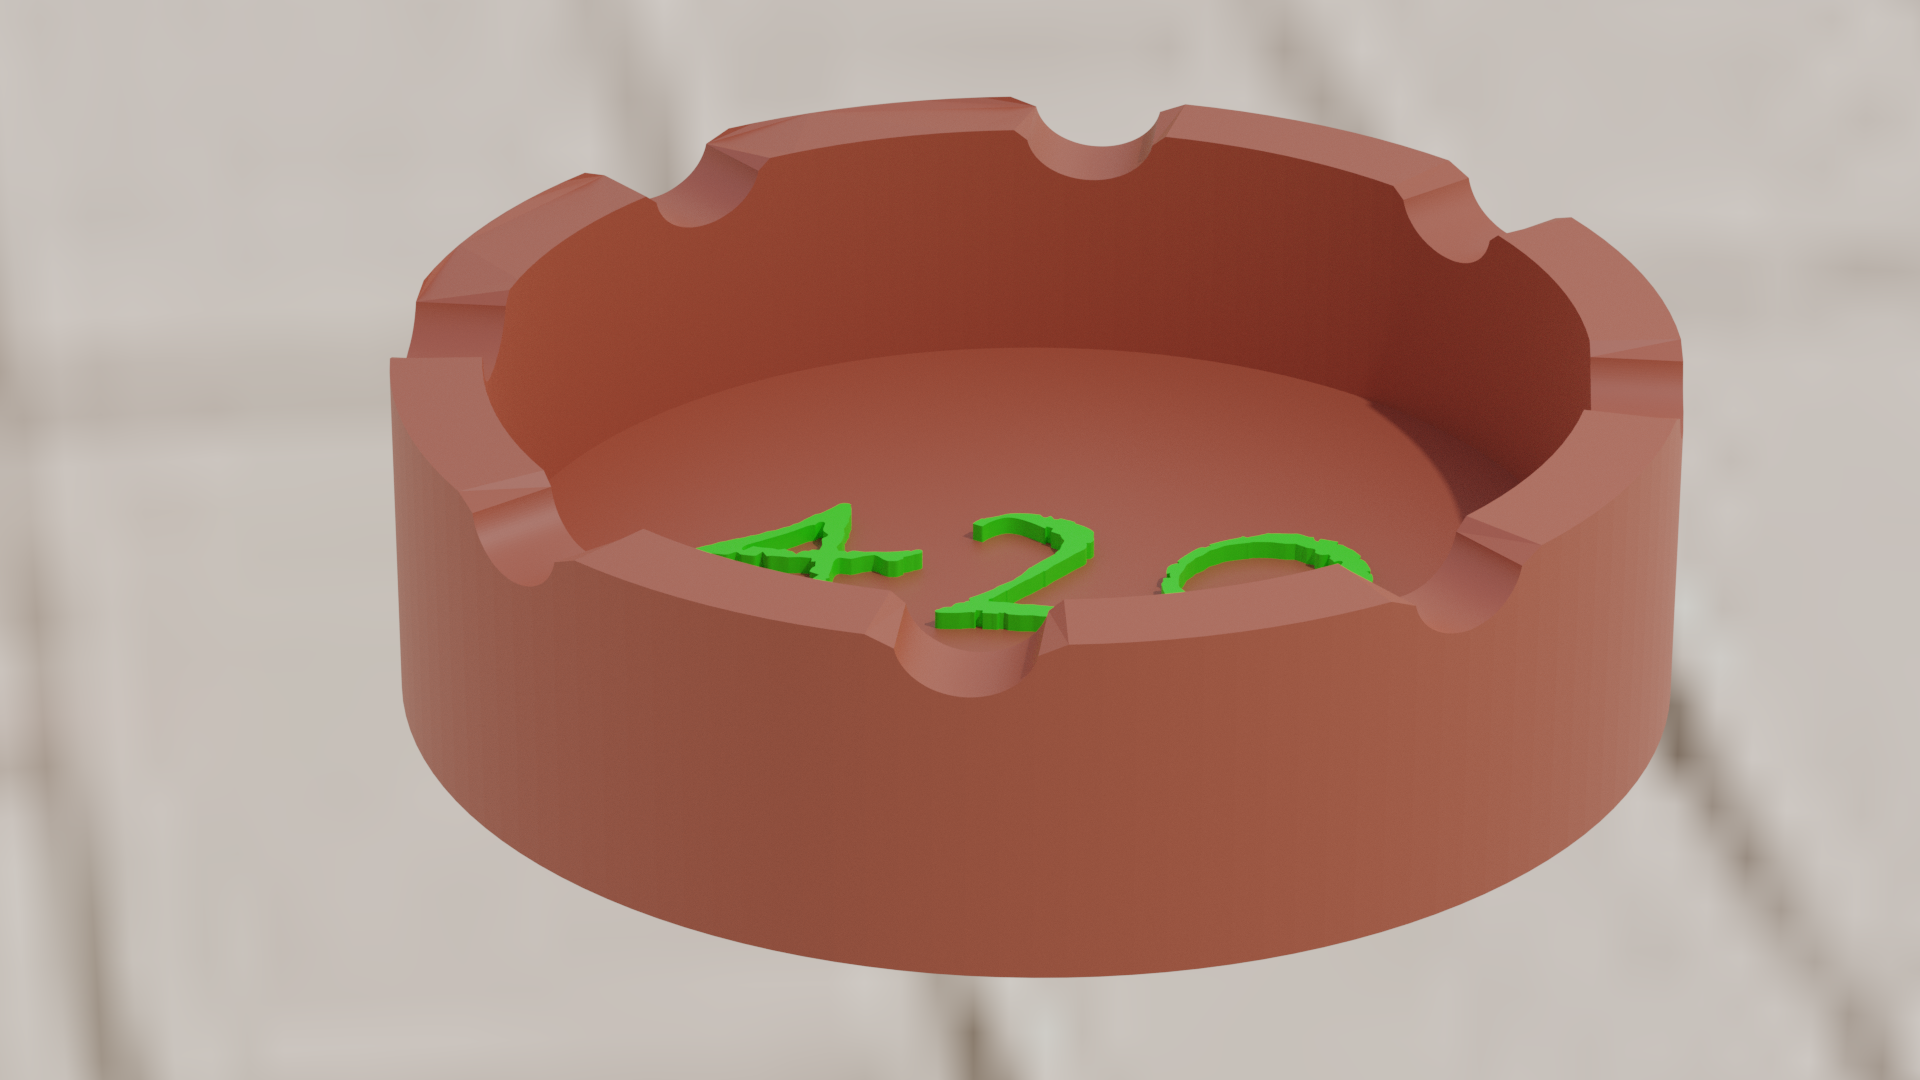 cenicero42001.png Download free STL file Ashtray 420 • Template to 3D print, amadorcin